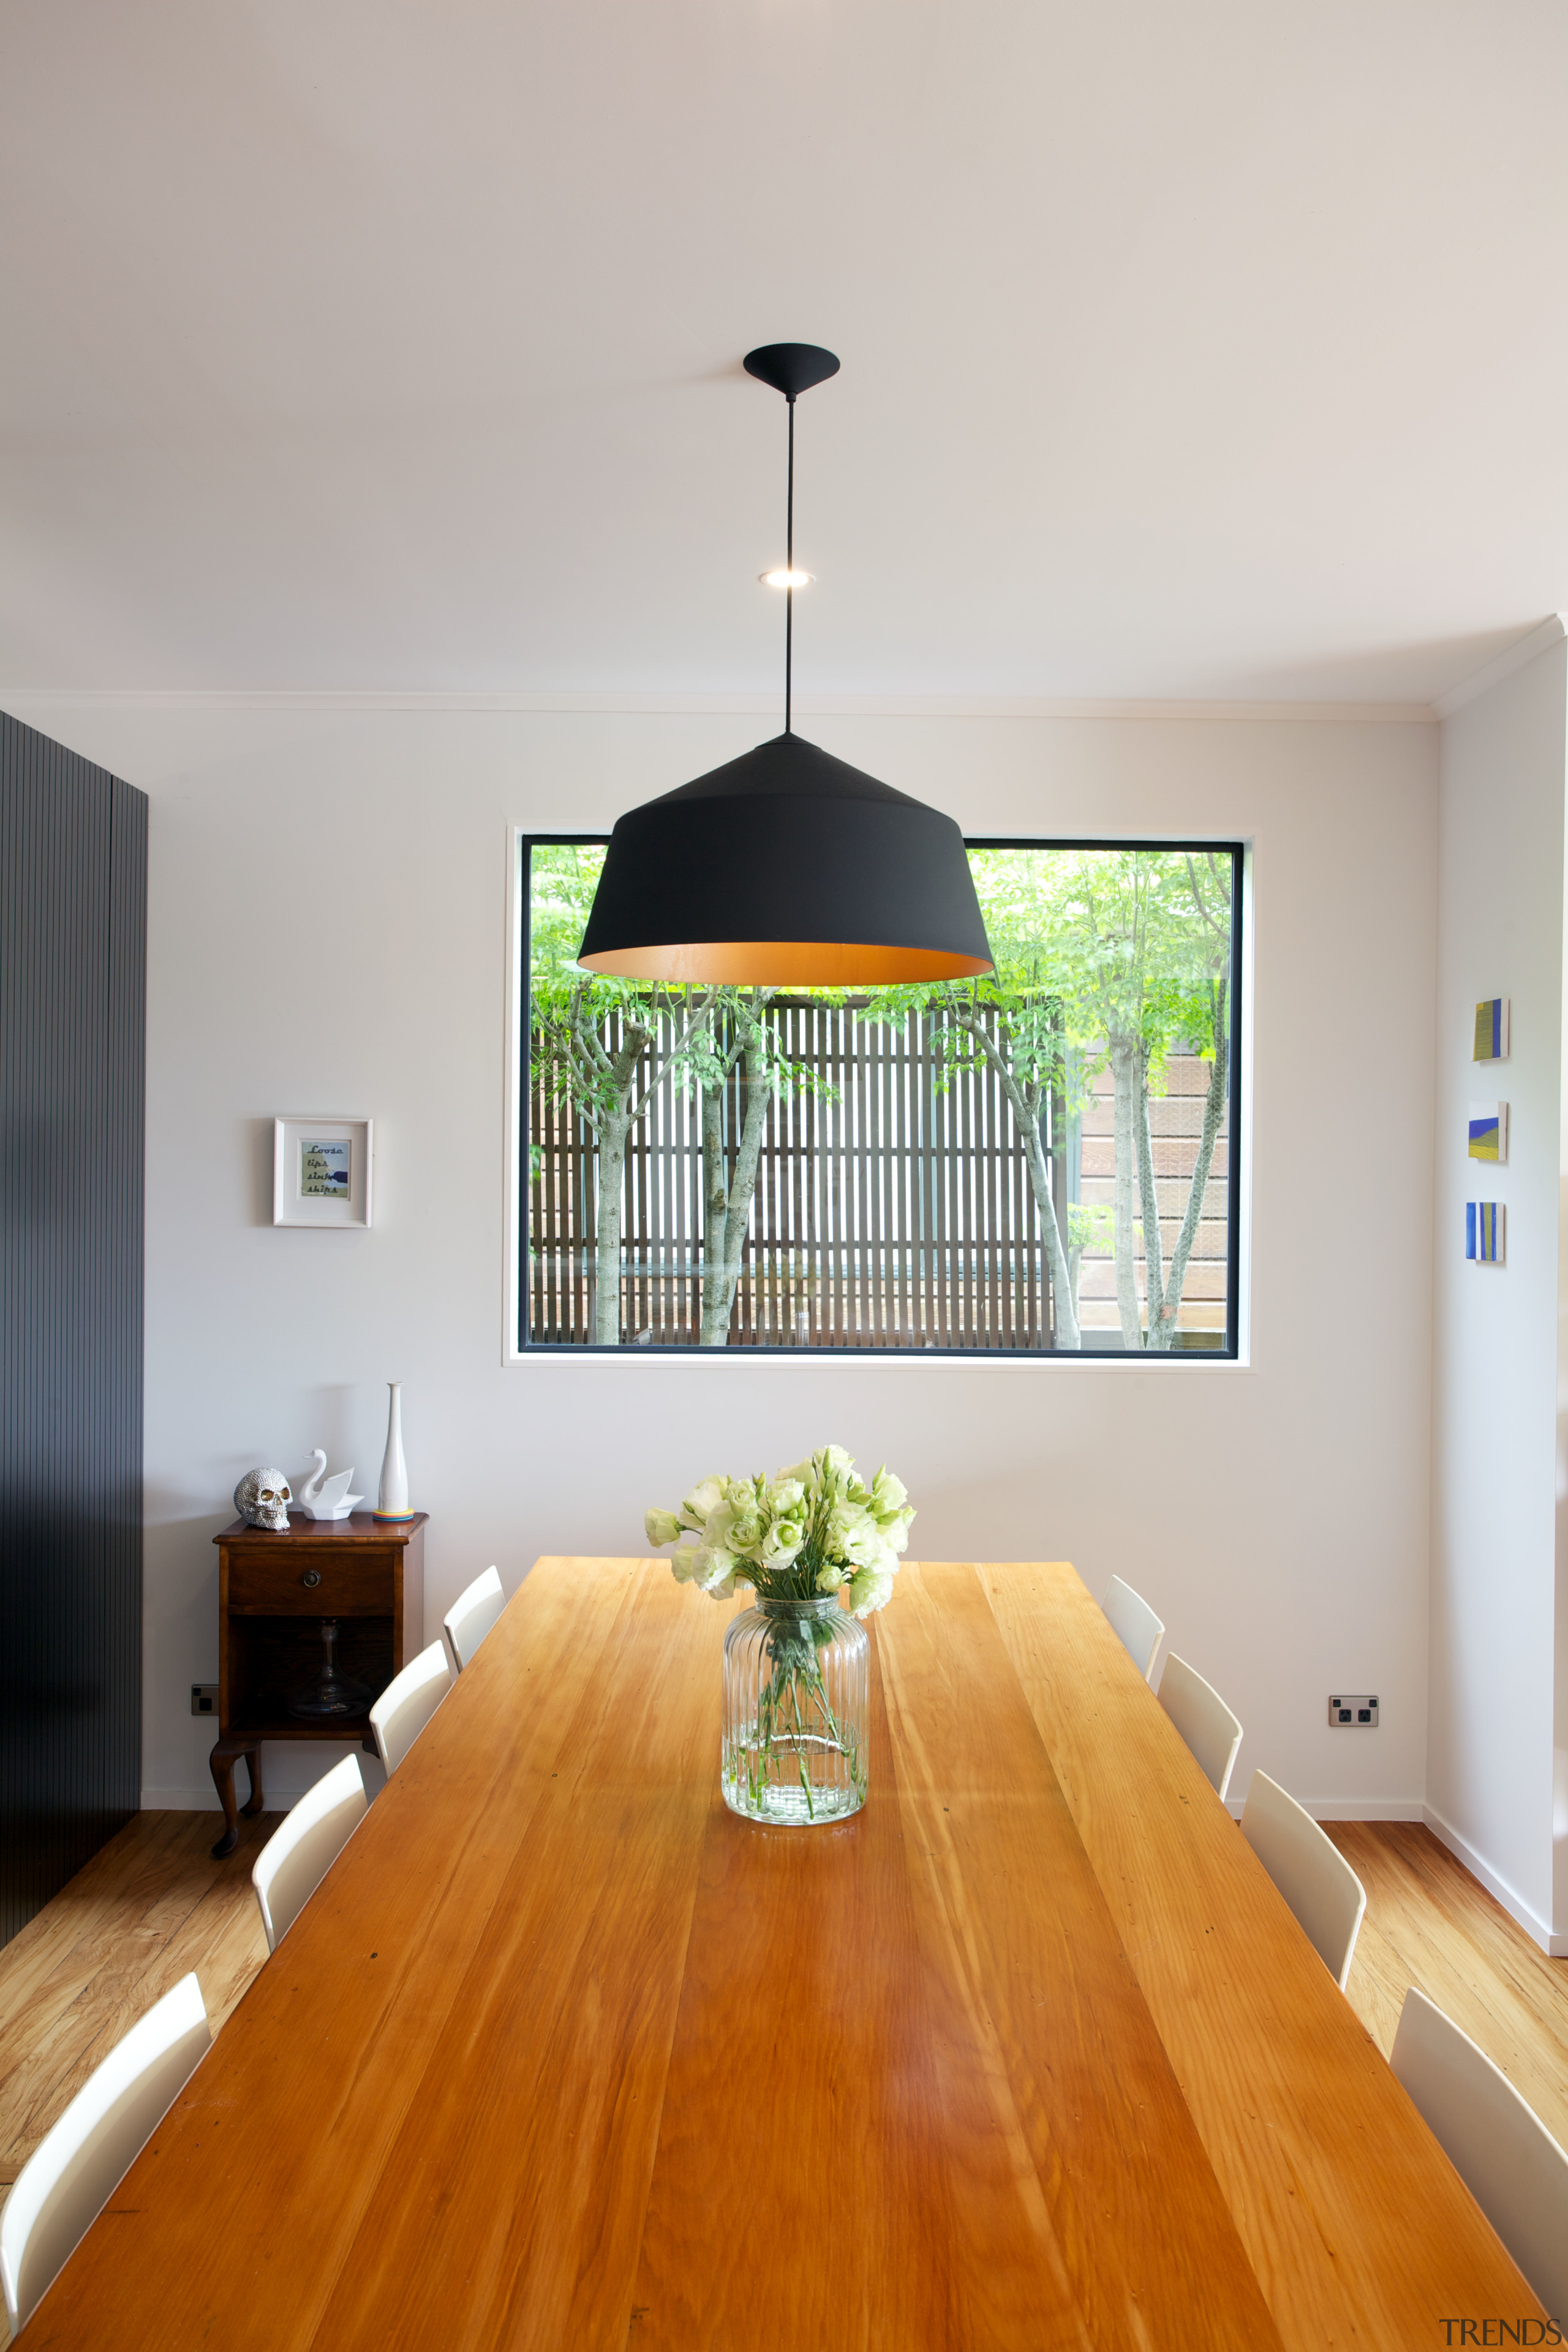 The light pendant in this remodelled family area architecture, ceiling, daylighting, dining room, floor, furniture, hardwood, home, house, interior design, light fixture, living room, real estate, room, table, gray